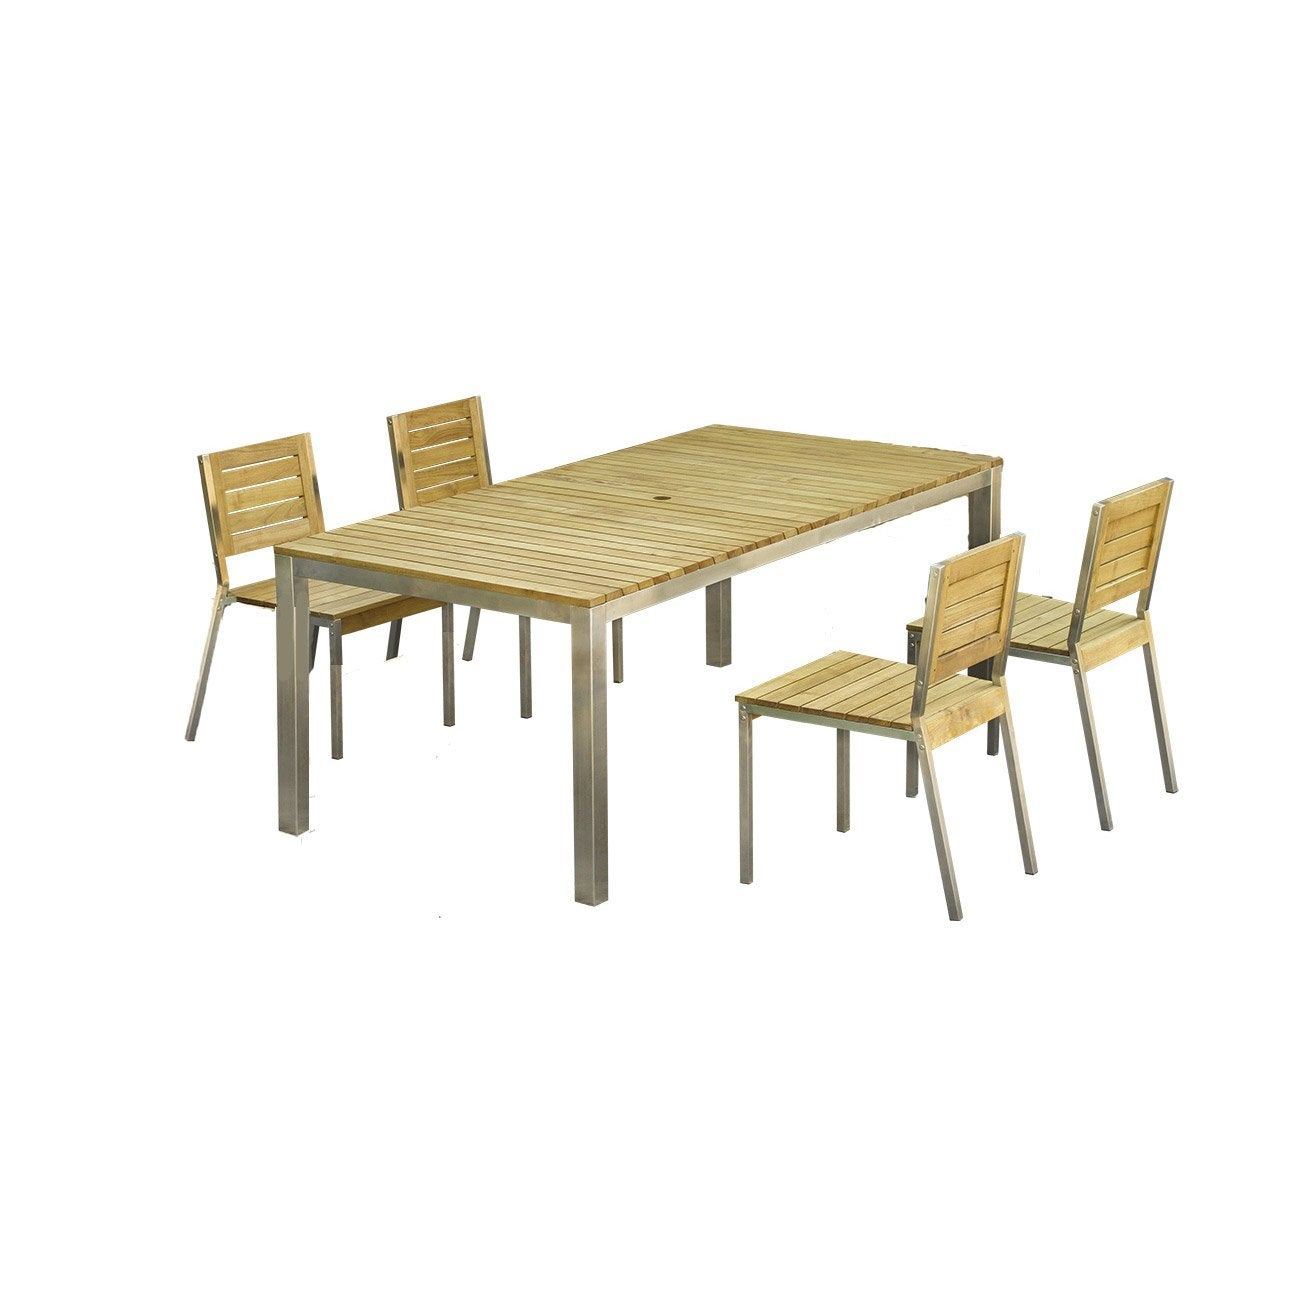 salon de jardin robinox bois naturel 1 table 200x100 2. Black Bedroom Furniture Sets. Home Design Ideas